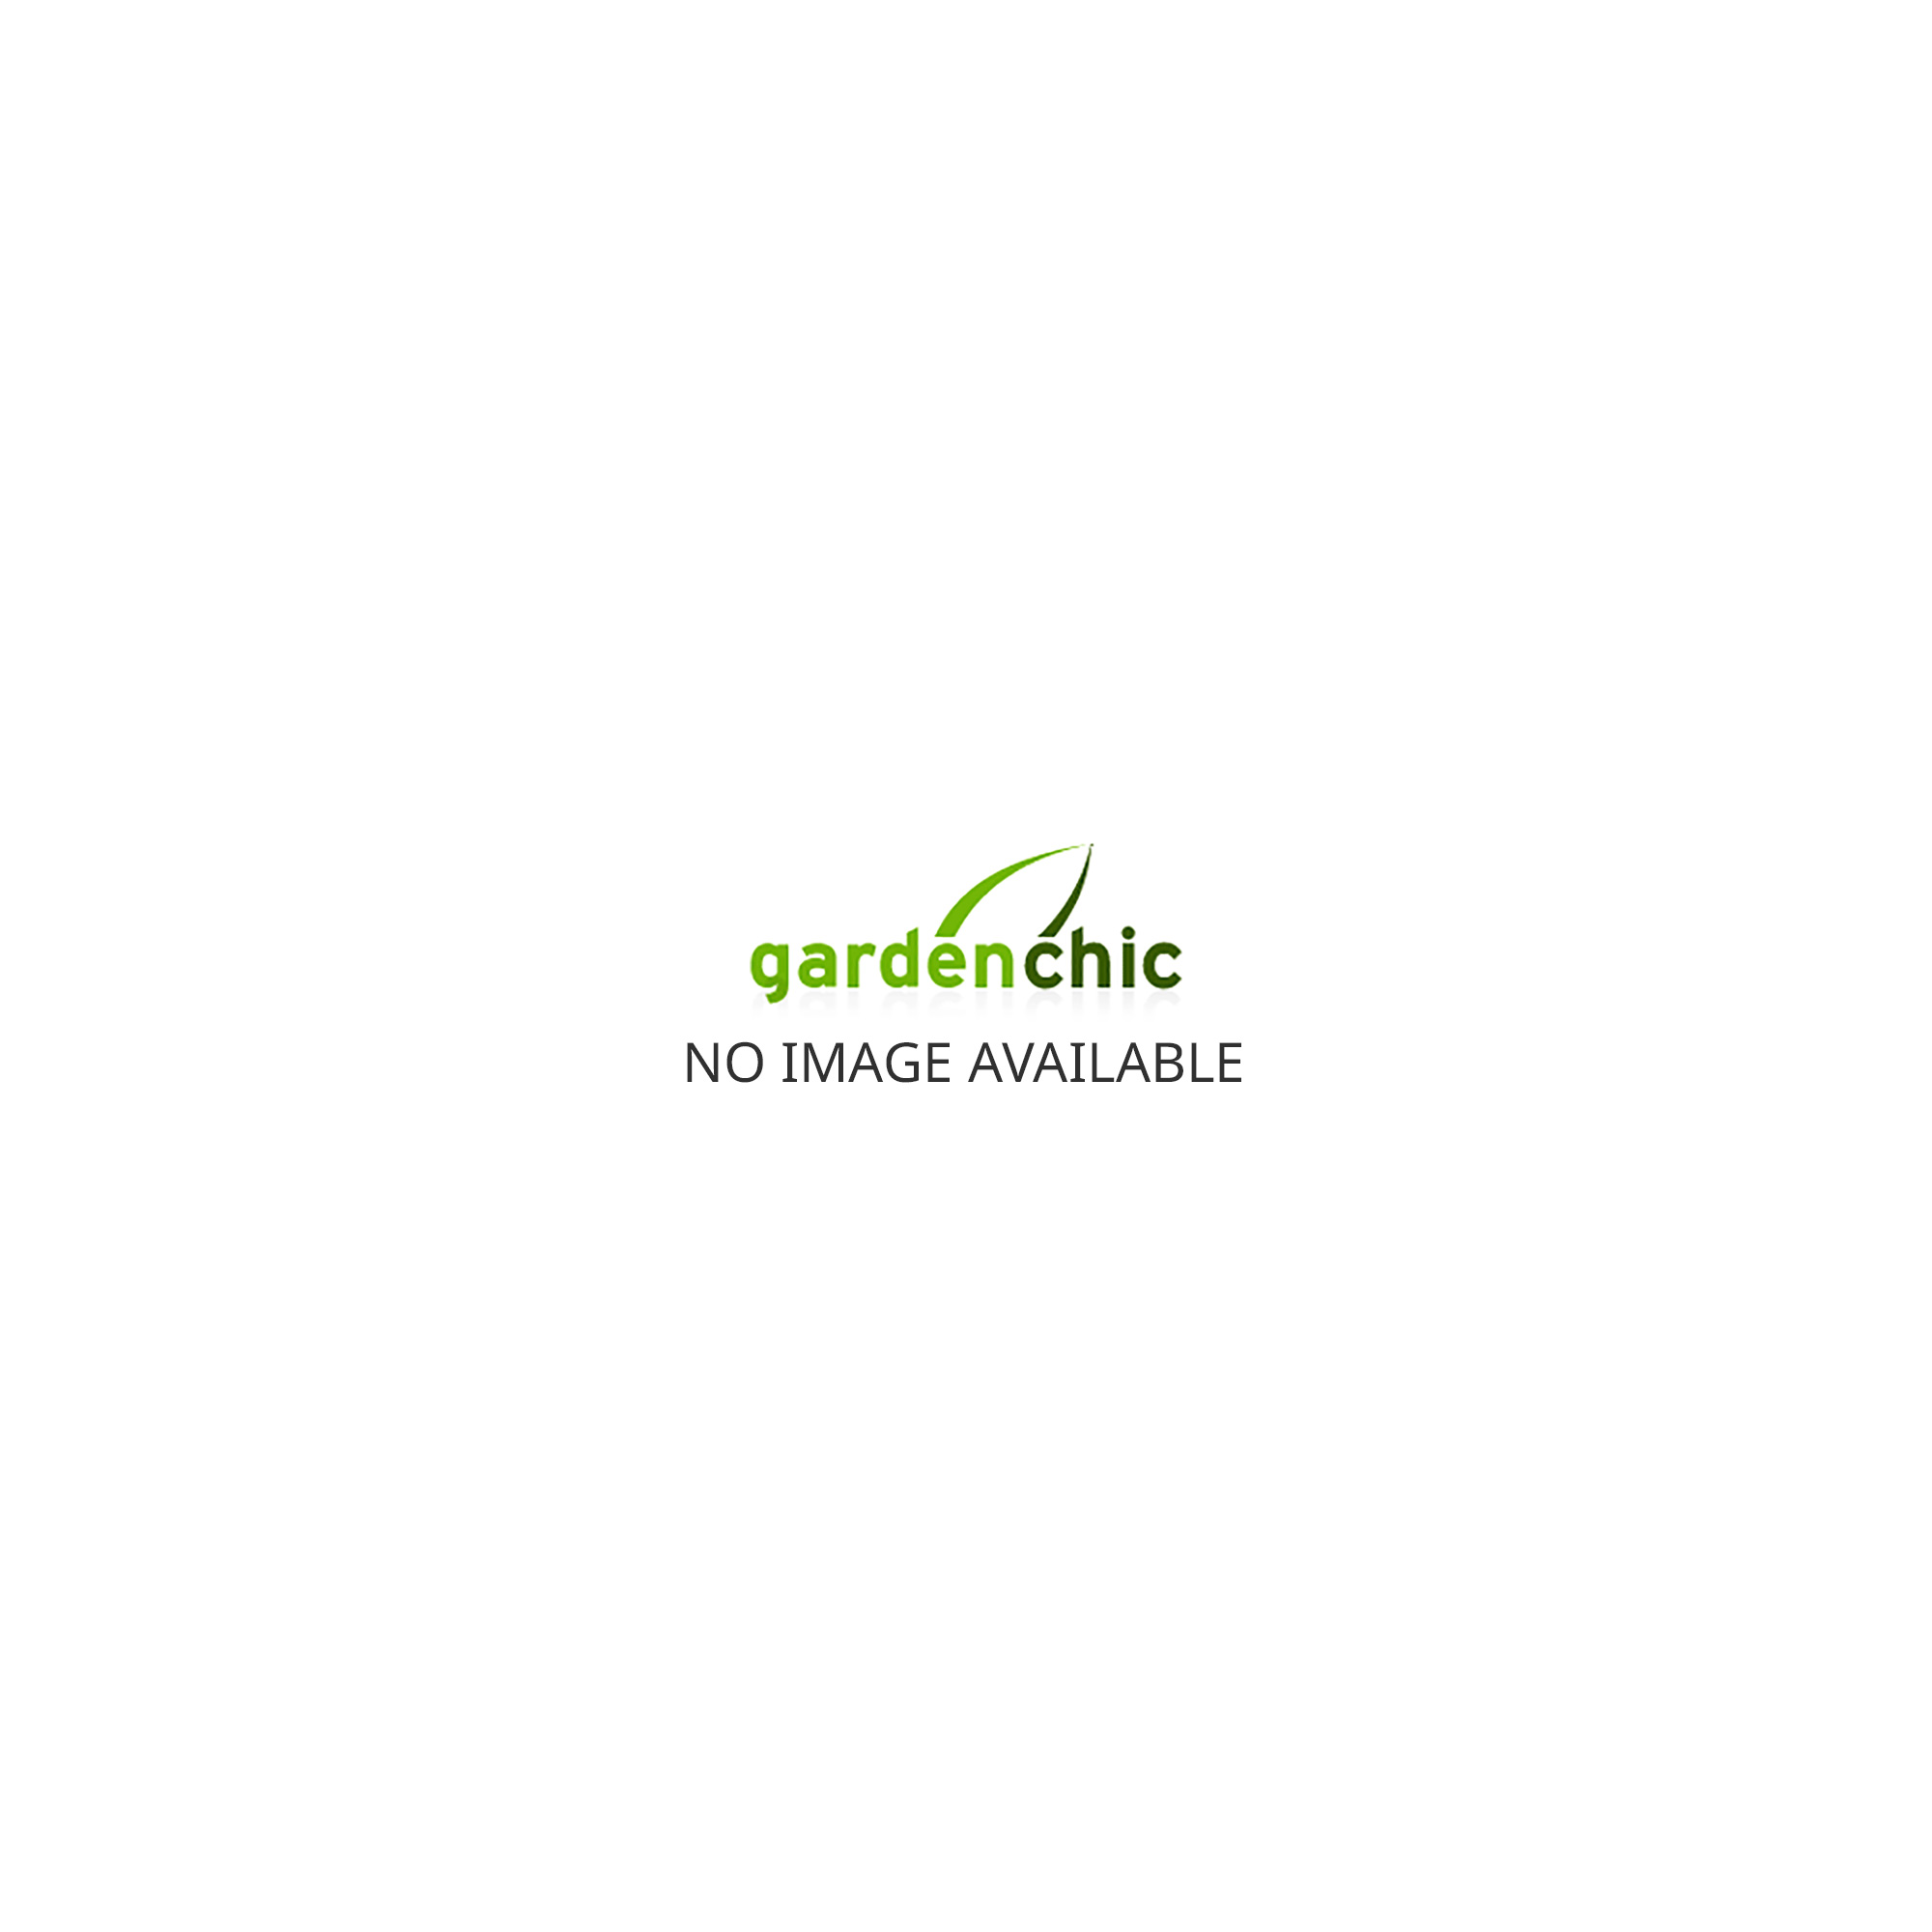 Hidecote Garden Wall Trellis: 5 Sizes